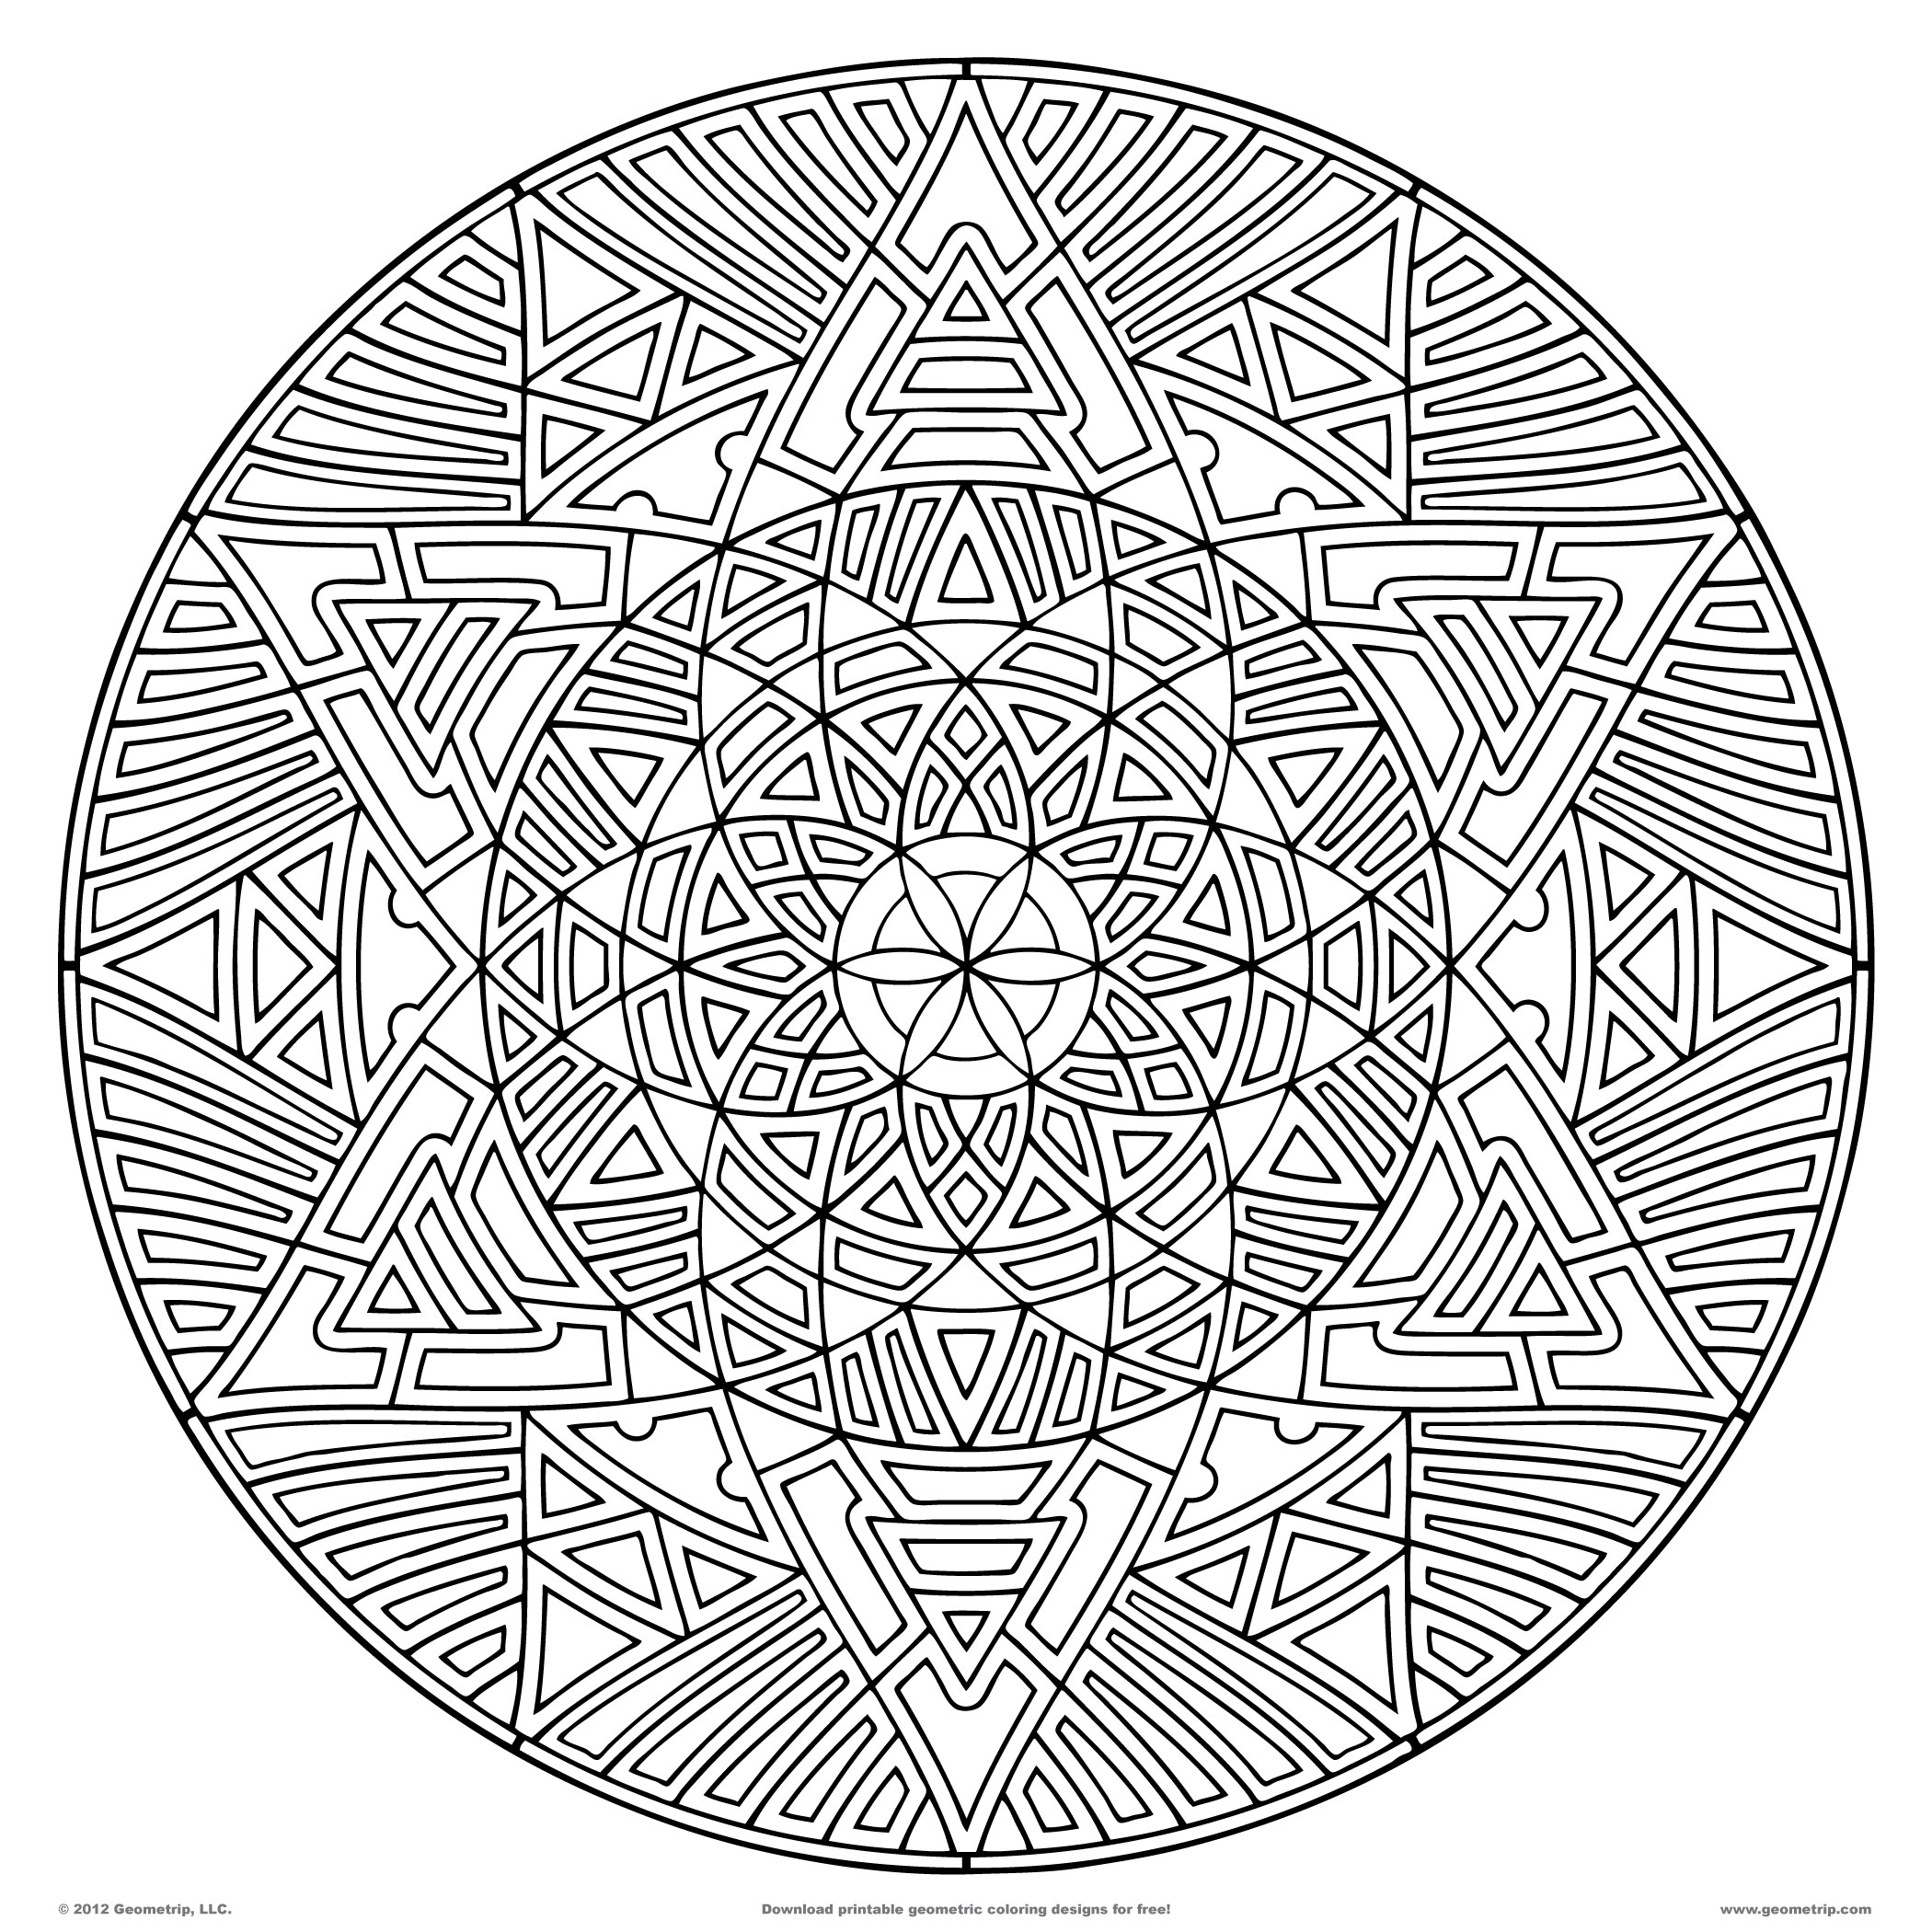 2100x2100 Awesome Mandala Coloring Pages Expert Level Free Coloring Pages